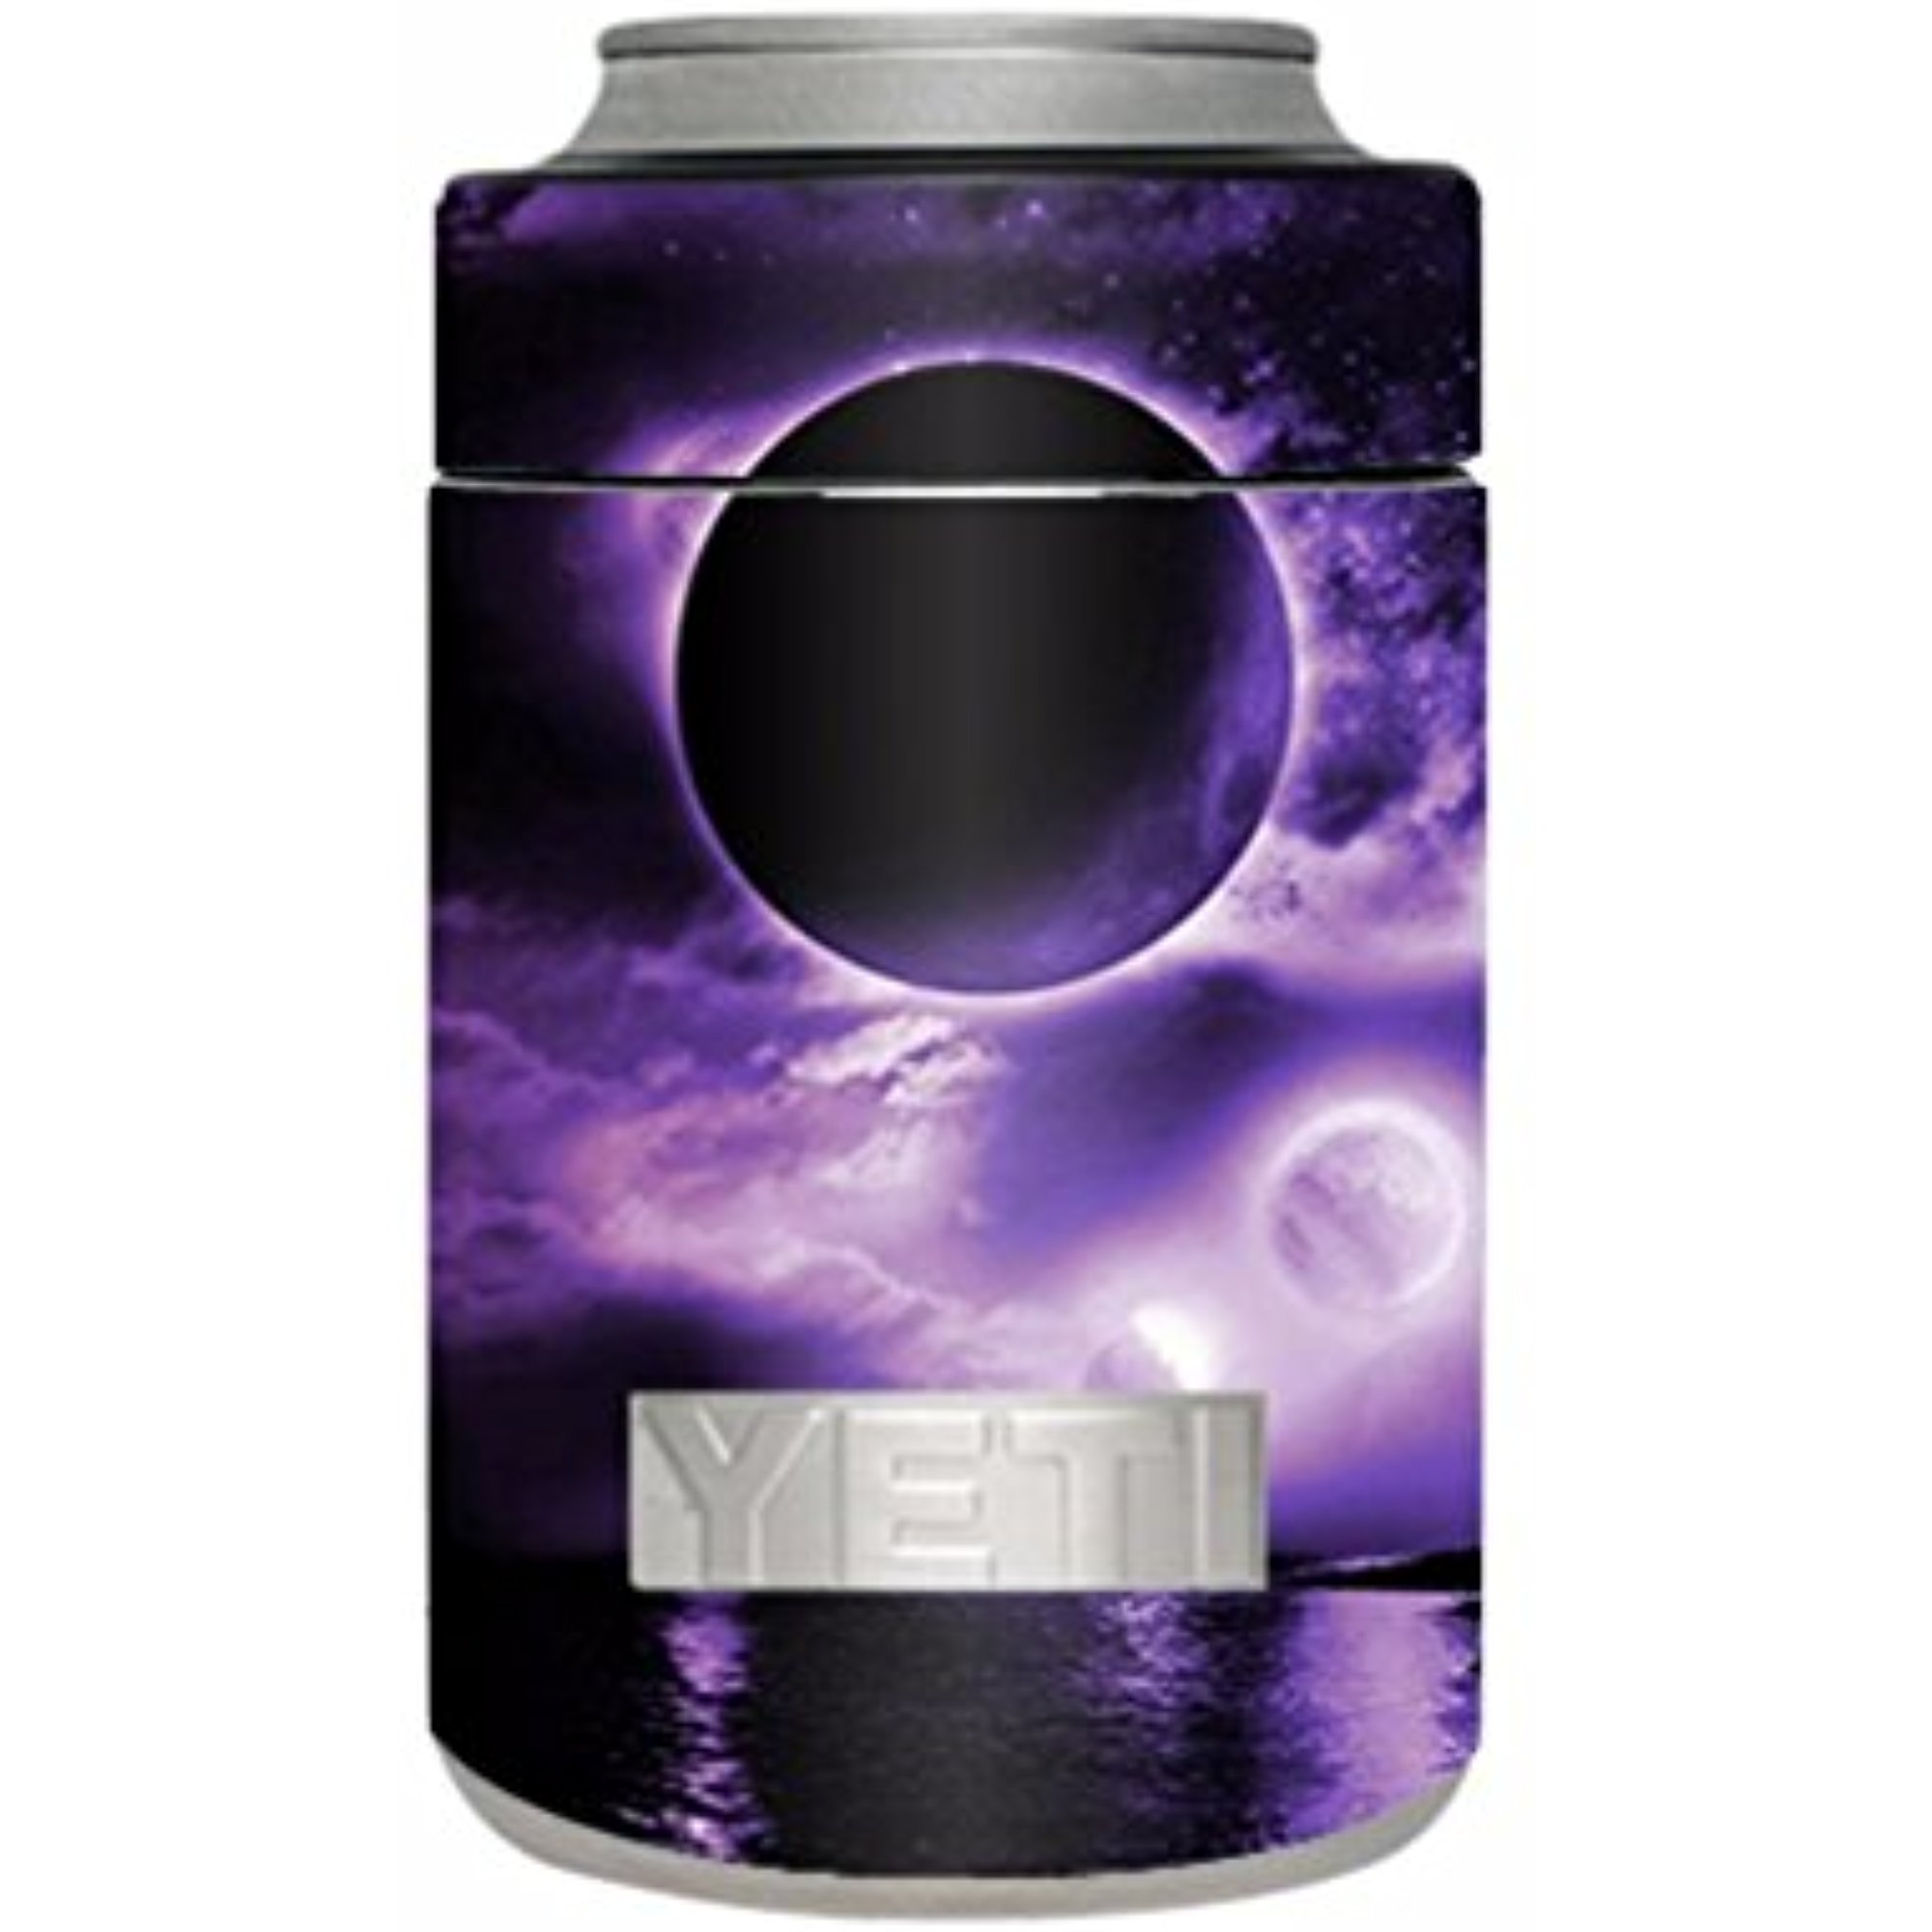 Skin Decal Vinyl Wrap for Yeti Rambler Colster Stickers Skins Cover / Eclipsed Moon purple sky